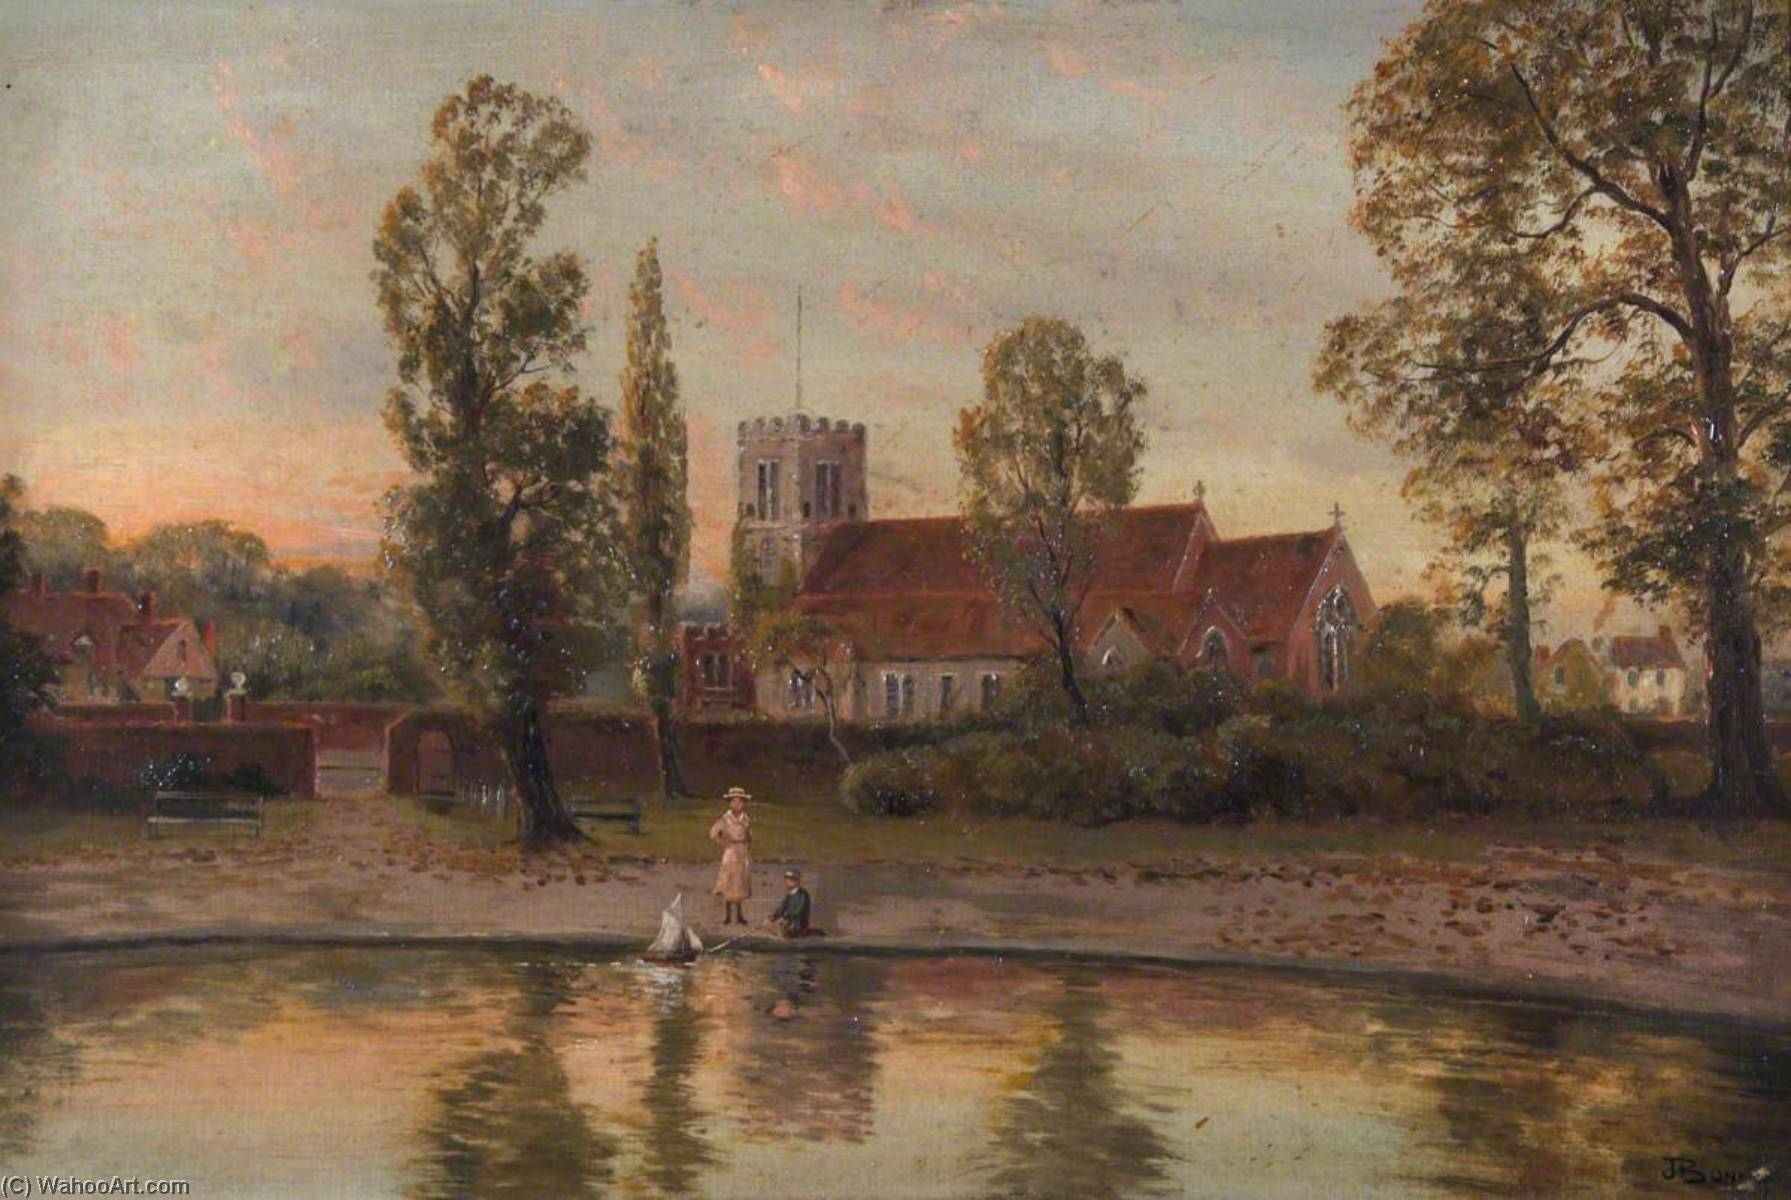 All Hallows Church, Tottenham, Oil On Canvas by John Bonny